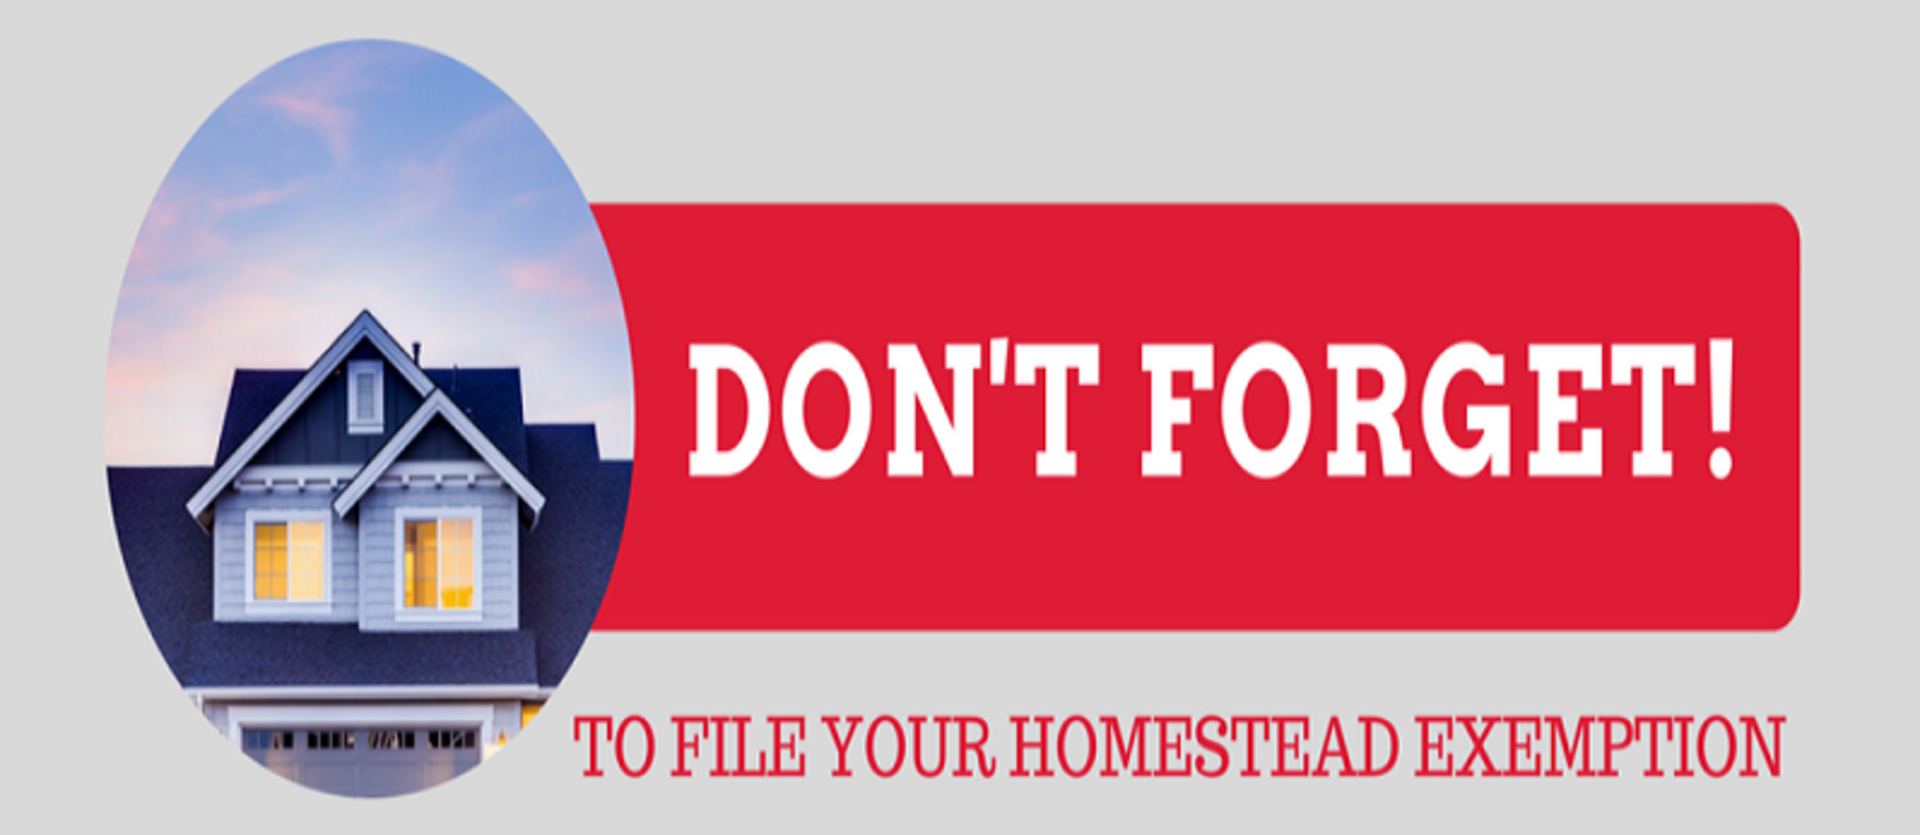 Don't Forget to Sign Up For Your Homestead Tax Exemption!